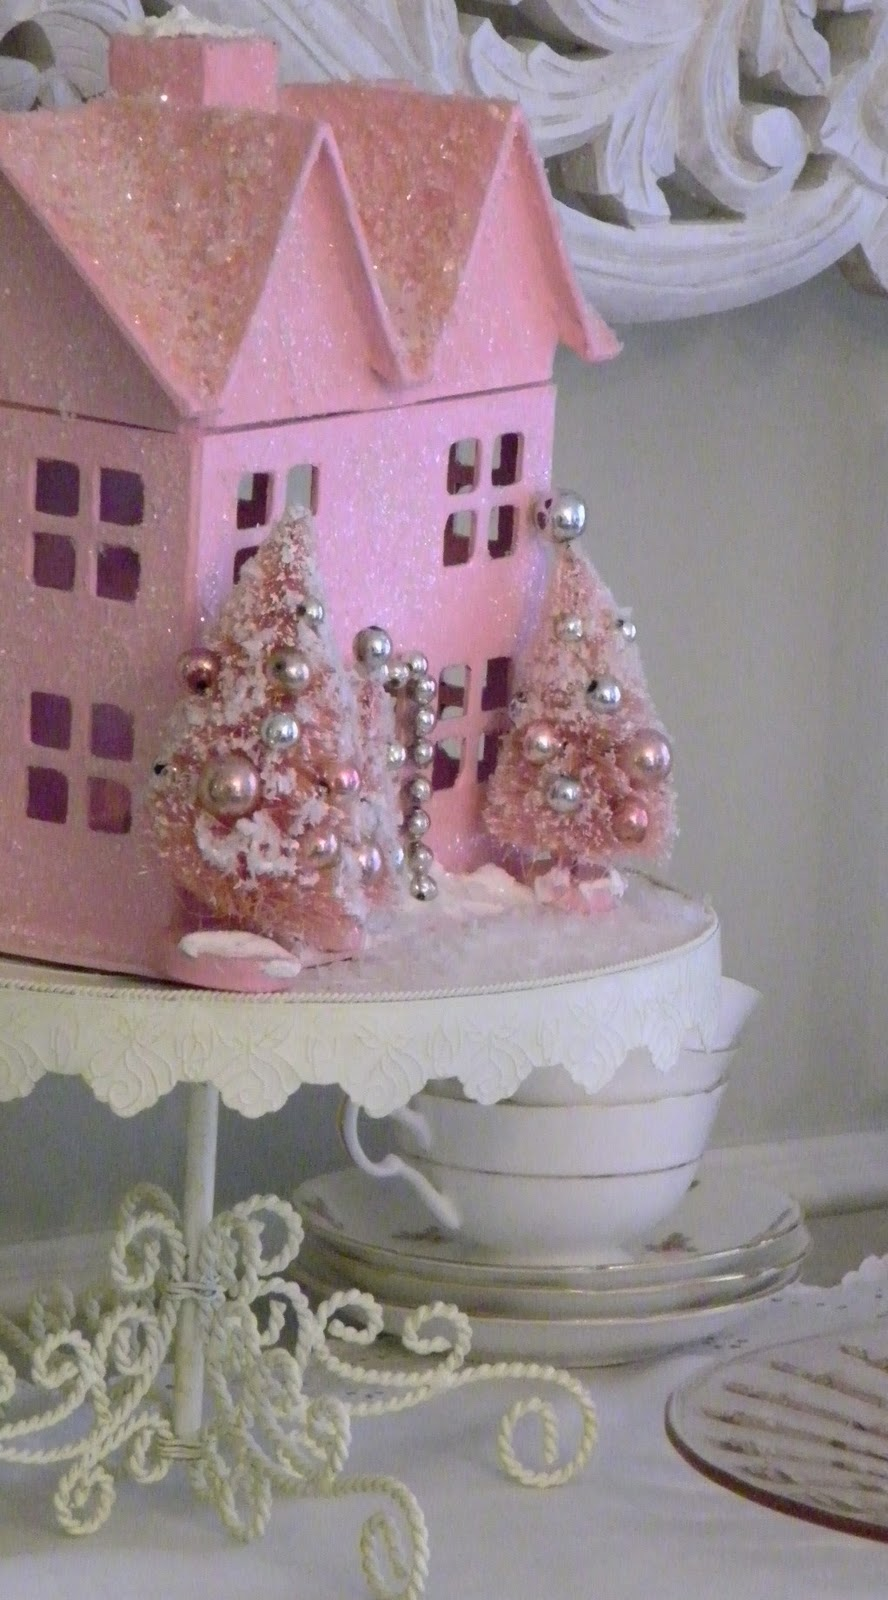 maison decor: i'm dreaming of a pink christmas